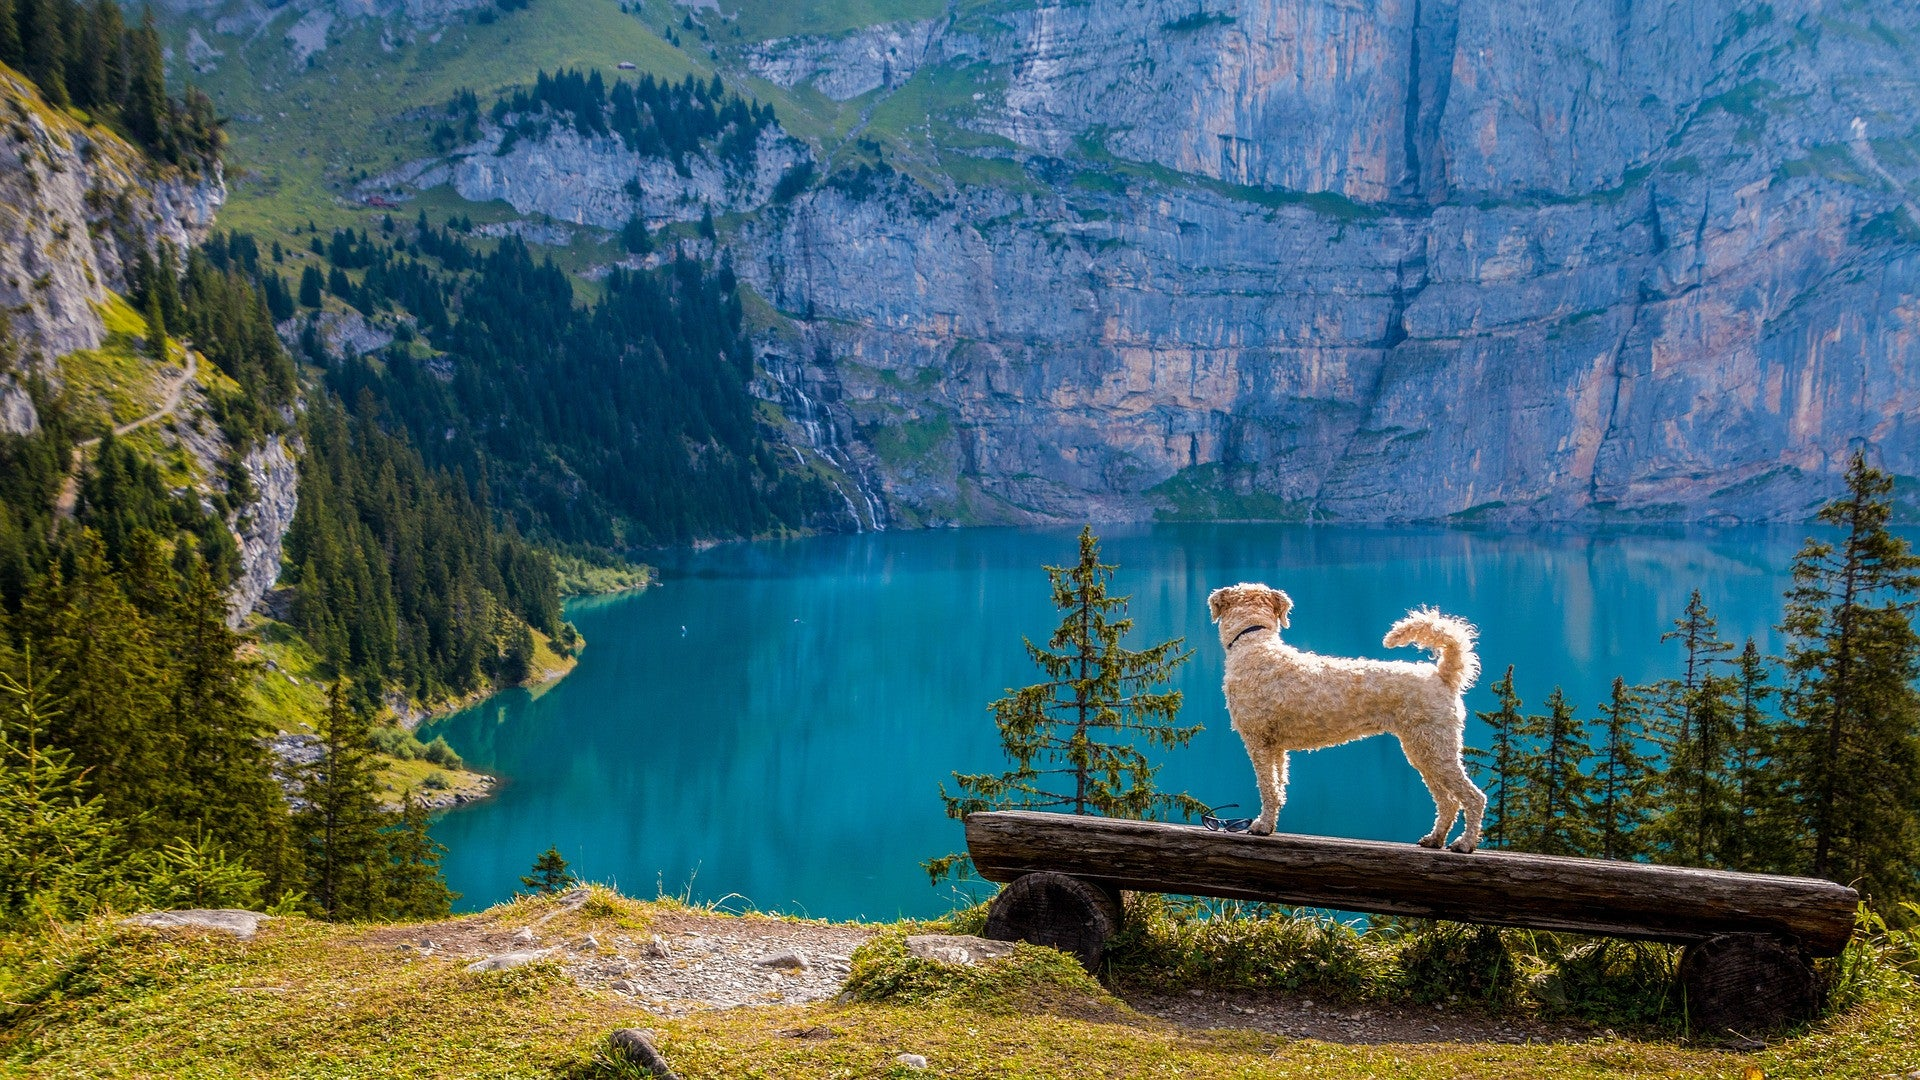 We found the most spectacular, dog friendly, hiking trail in the entire world.